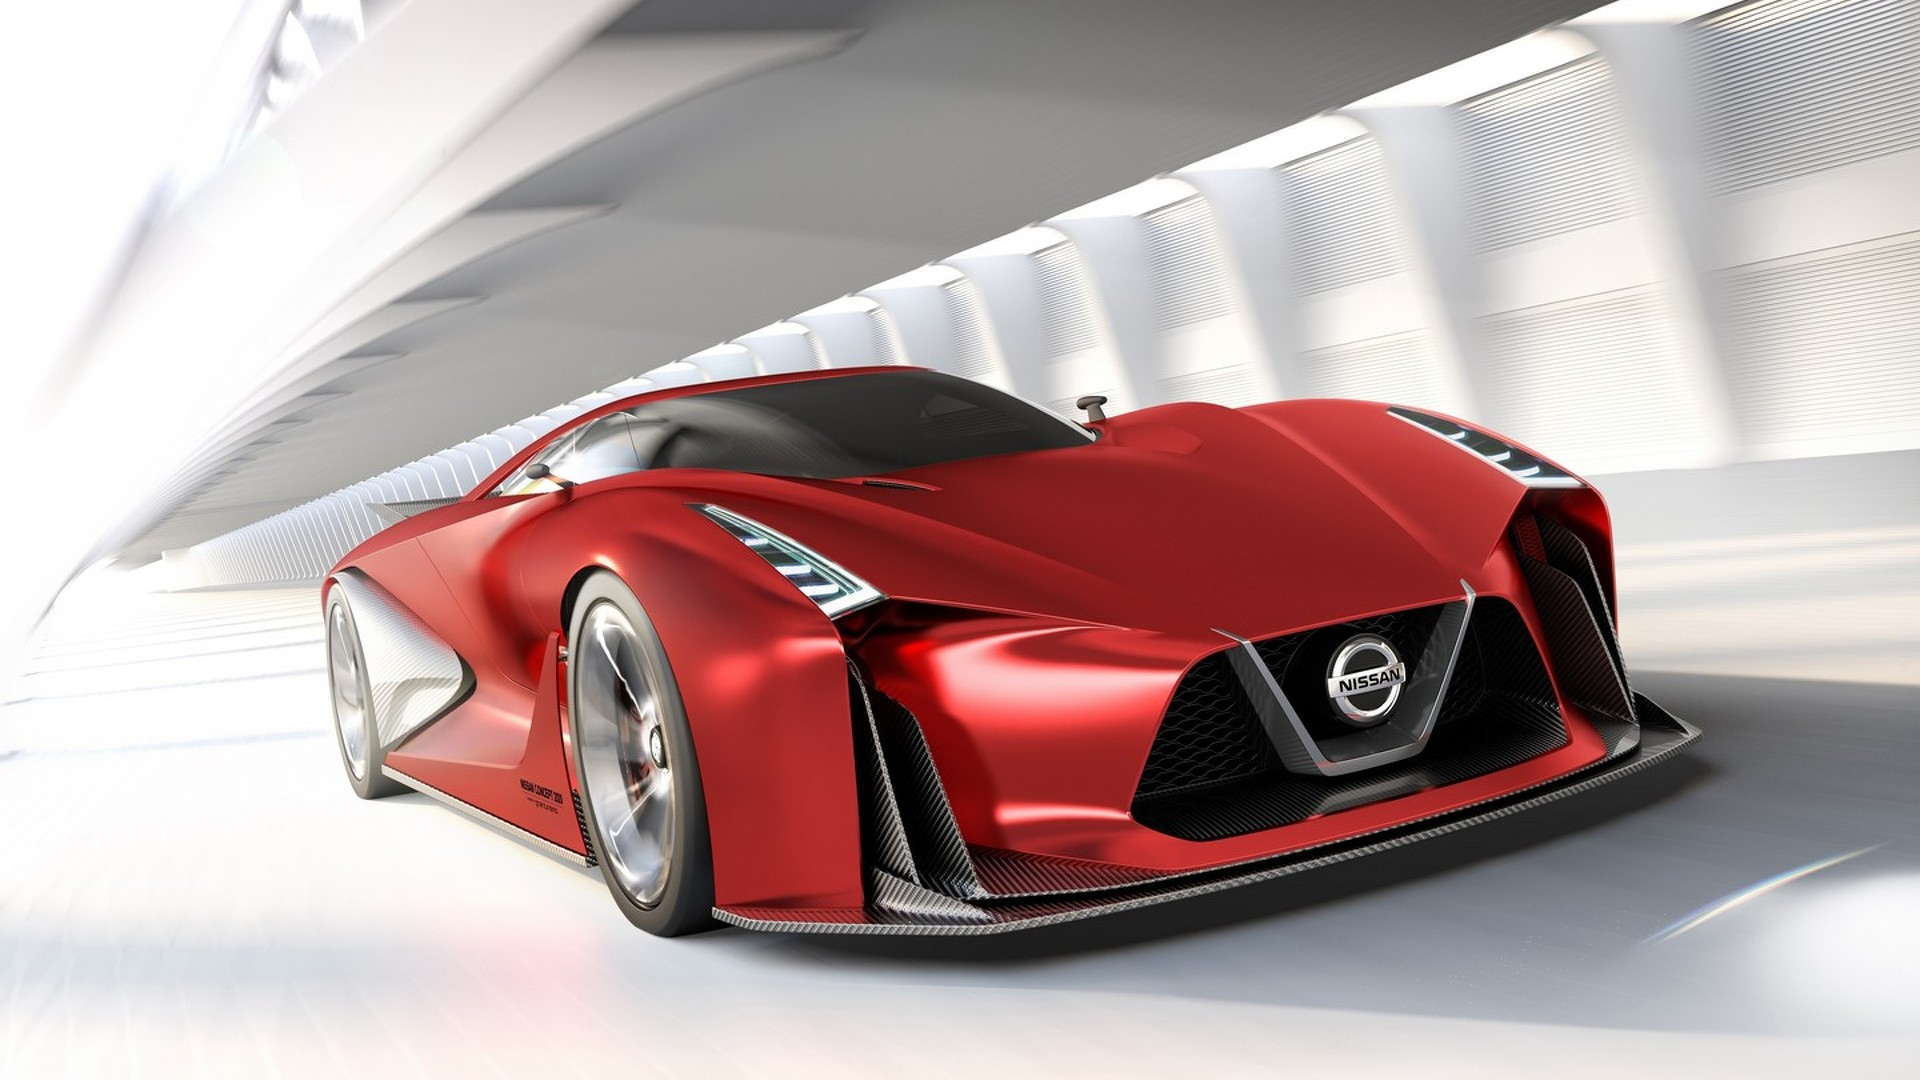 Nissan Sports Car >> Nissan New Gt R To Be Fastest Super Sports Car In The World